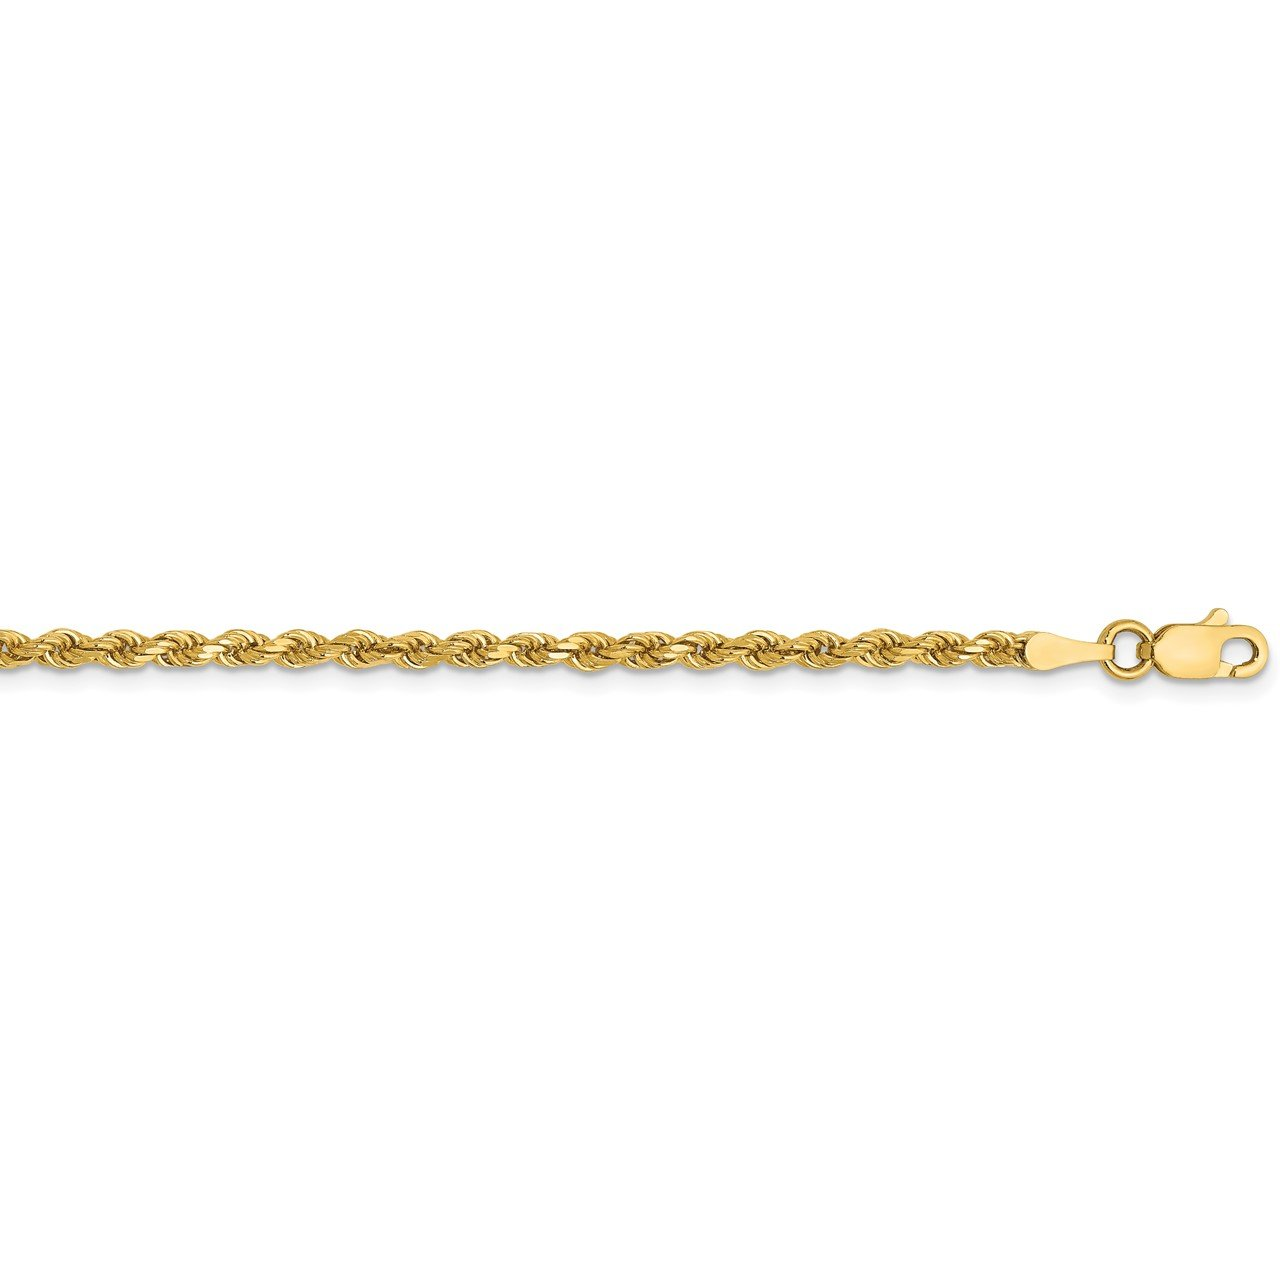 14k 2.5mm Semi-solid D/C Rope Chain